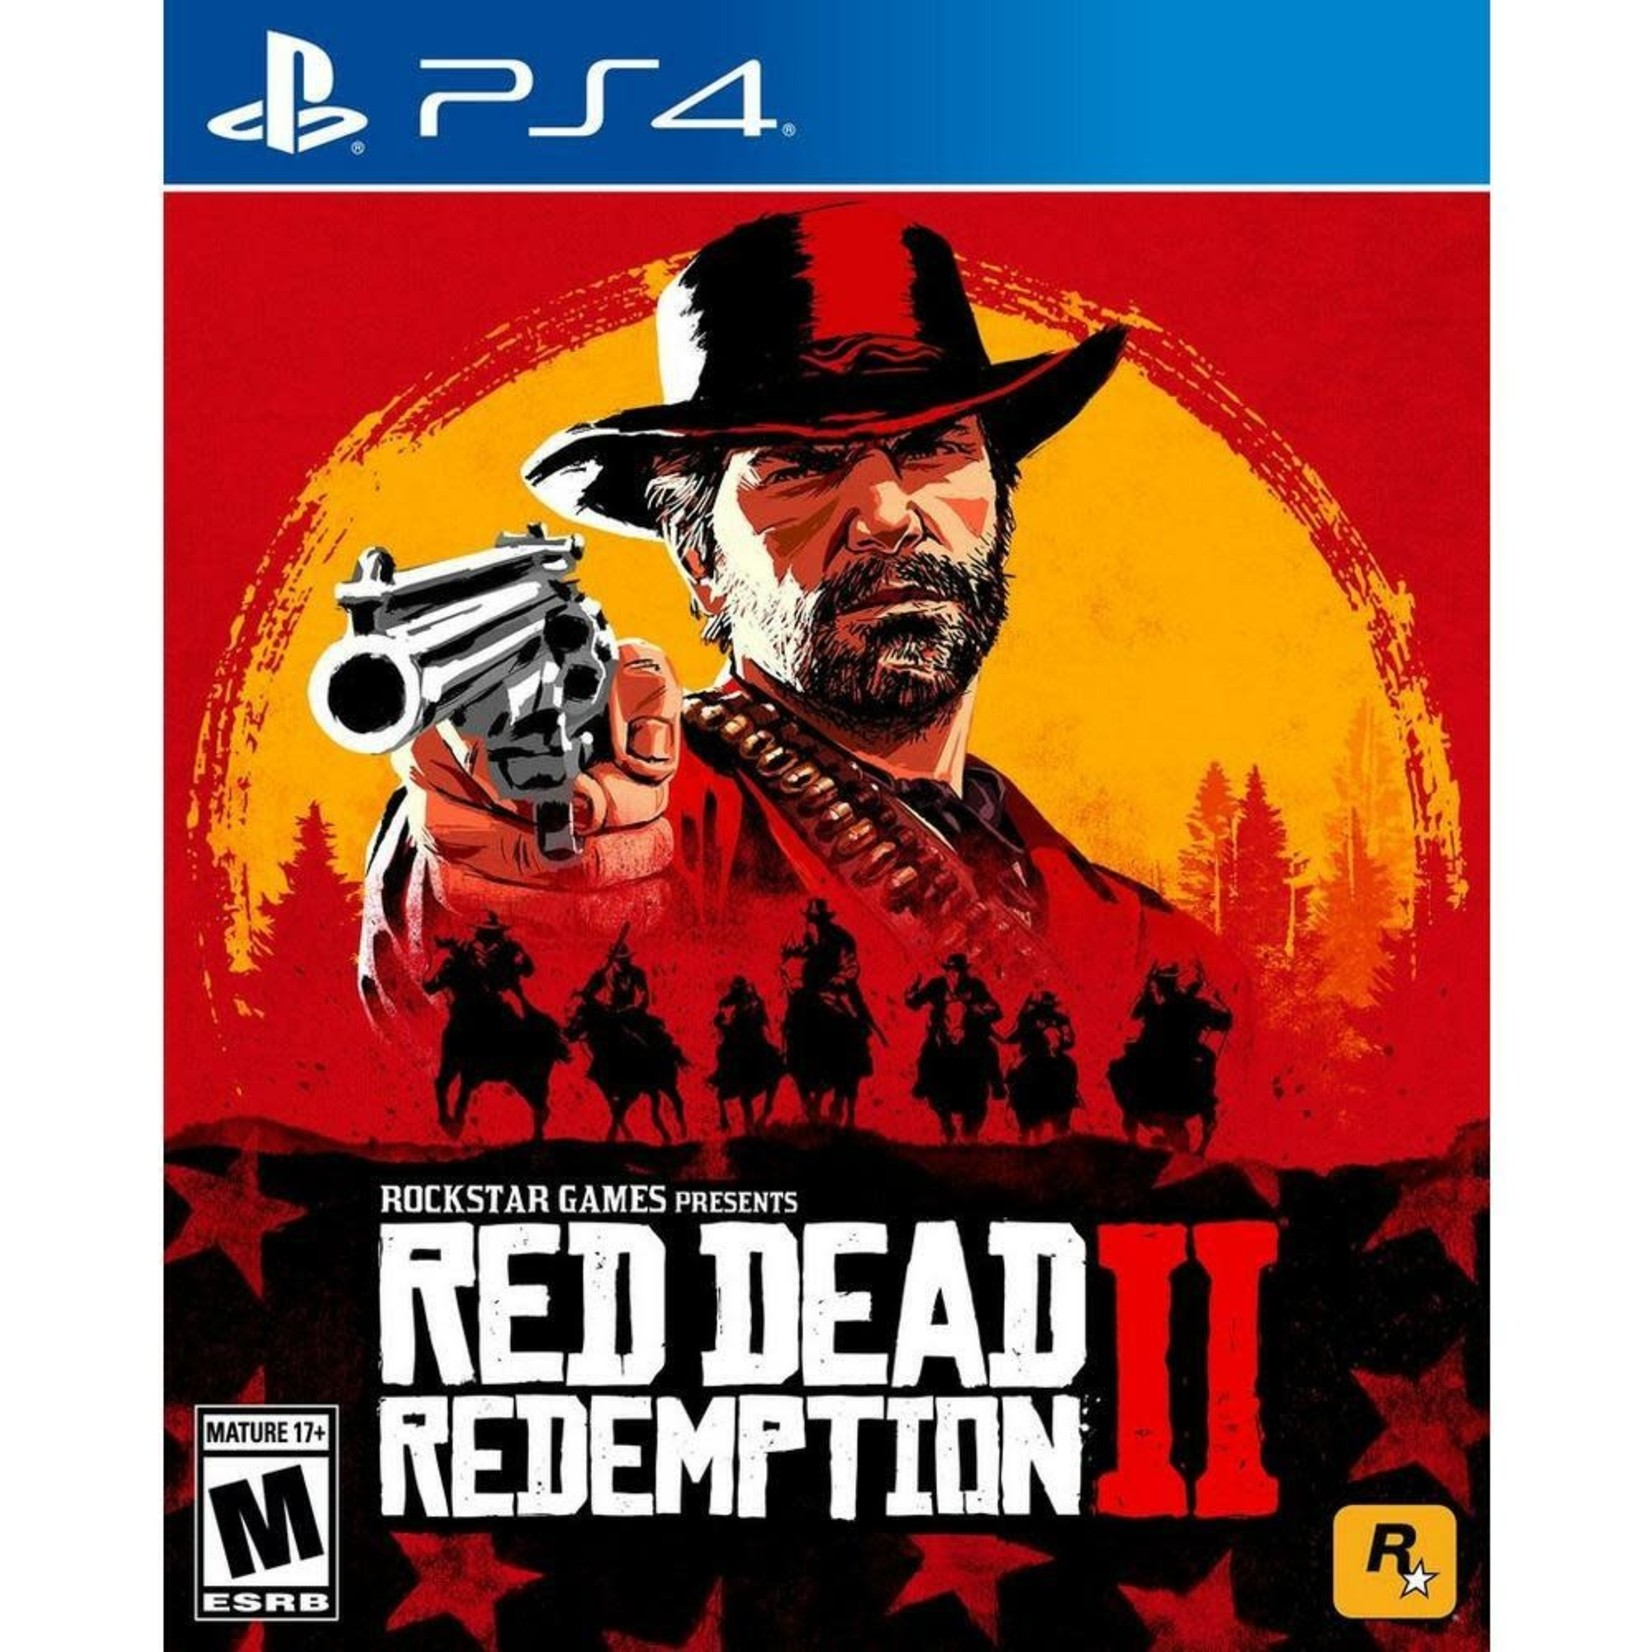 PS4U-Red Dead Redemption 2